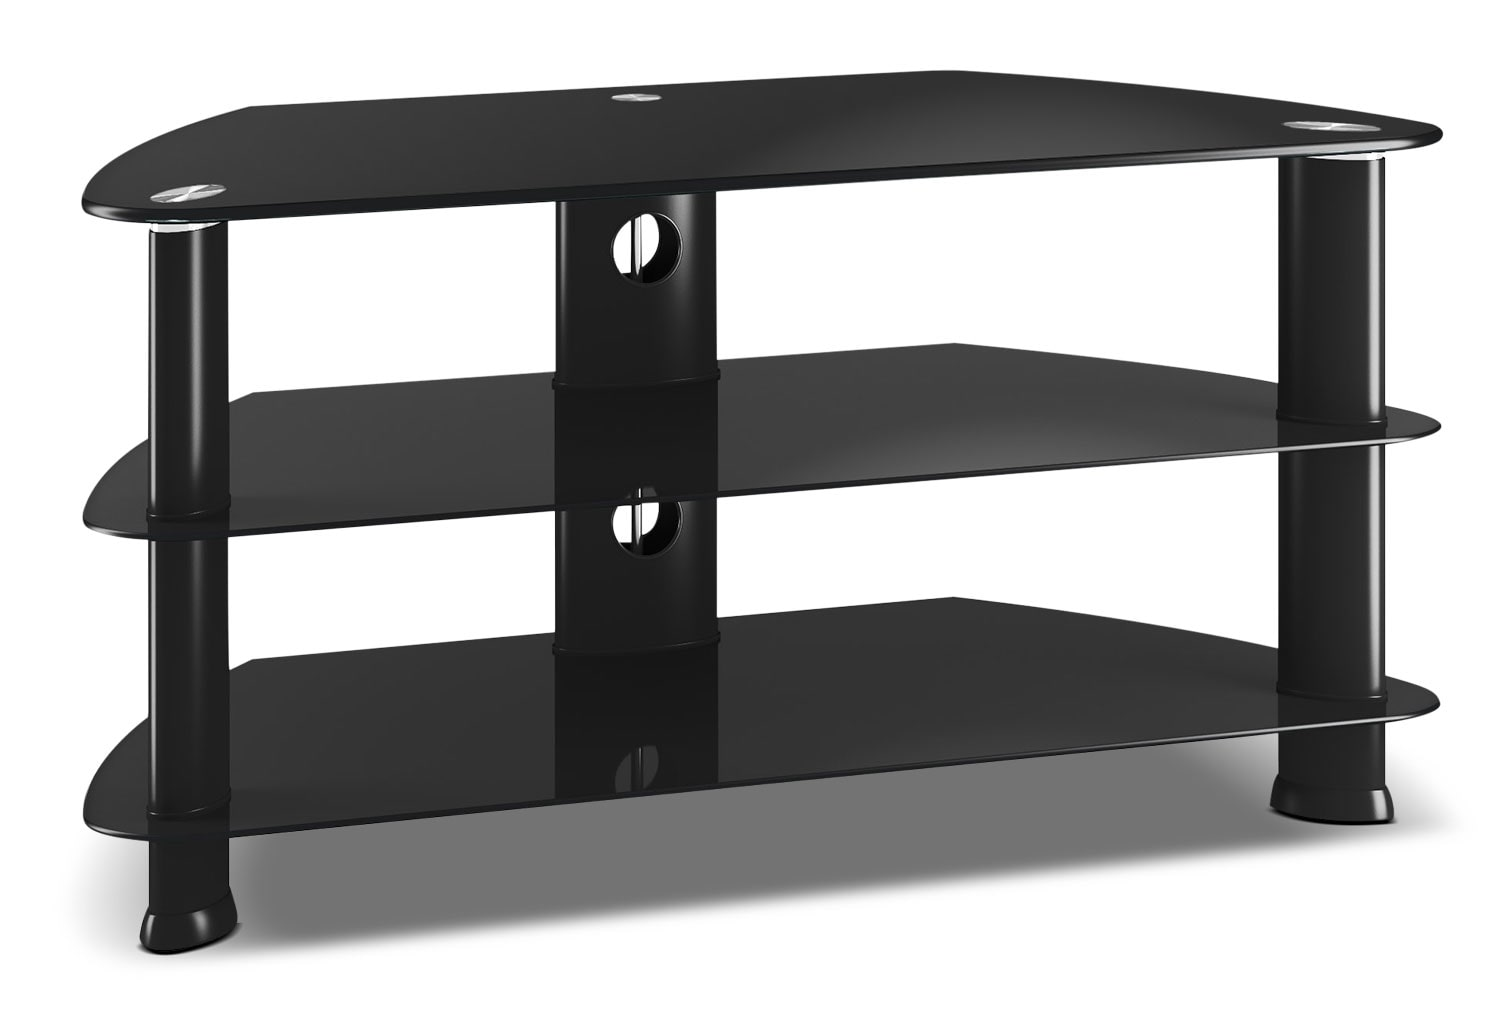 Table Tv En Coin Fenrez Com Sammlung Von Design Zeichnungen  # Table Tv En Coin